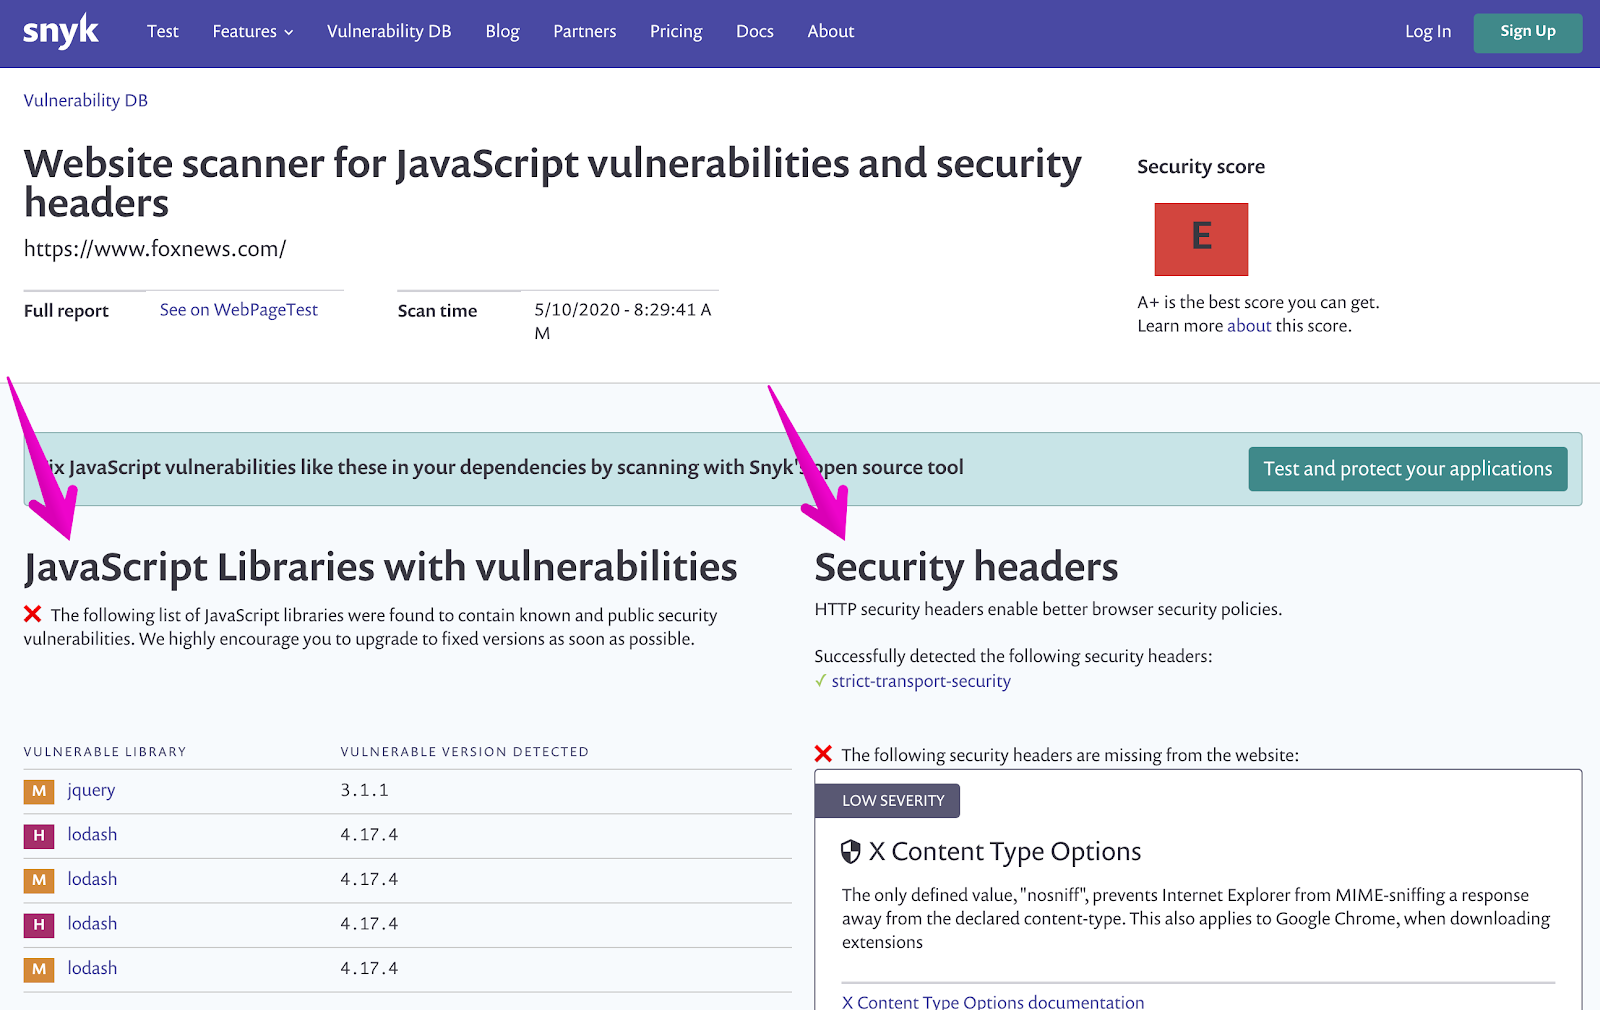 Vulnerable JavaScript libraries and missing HTTP security headers in this website security score